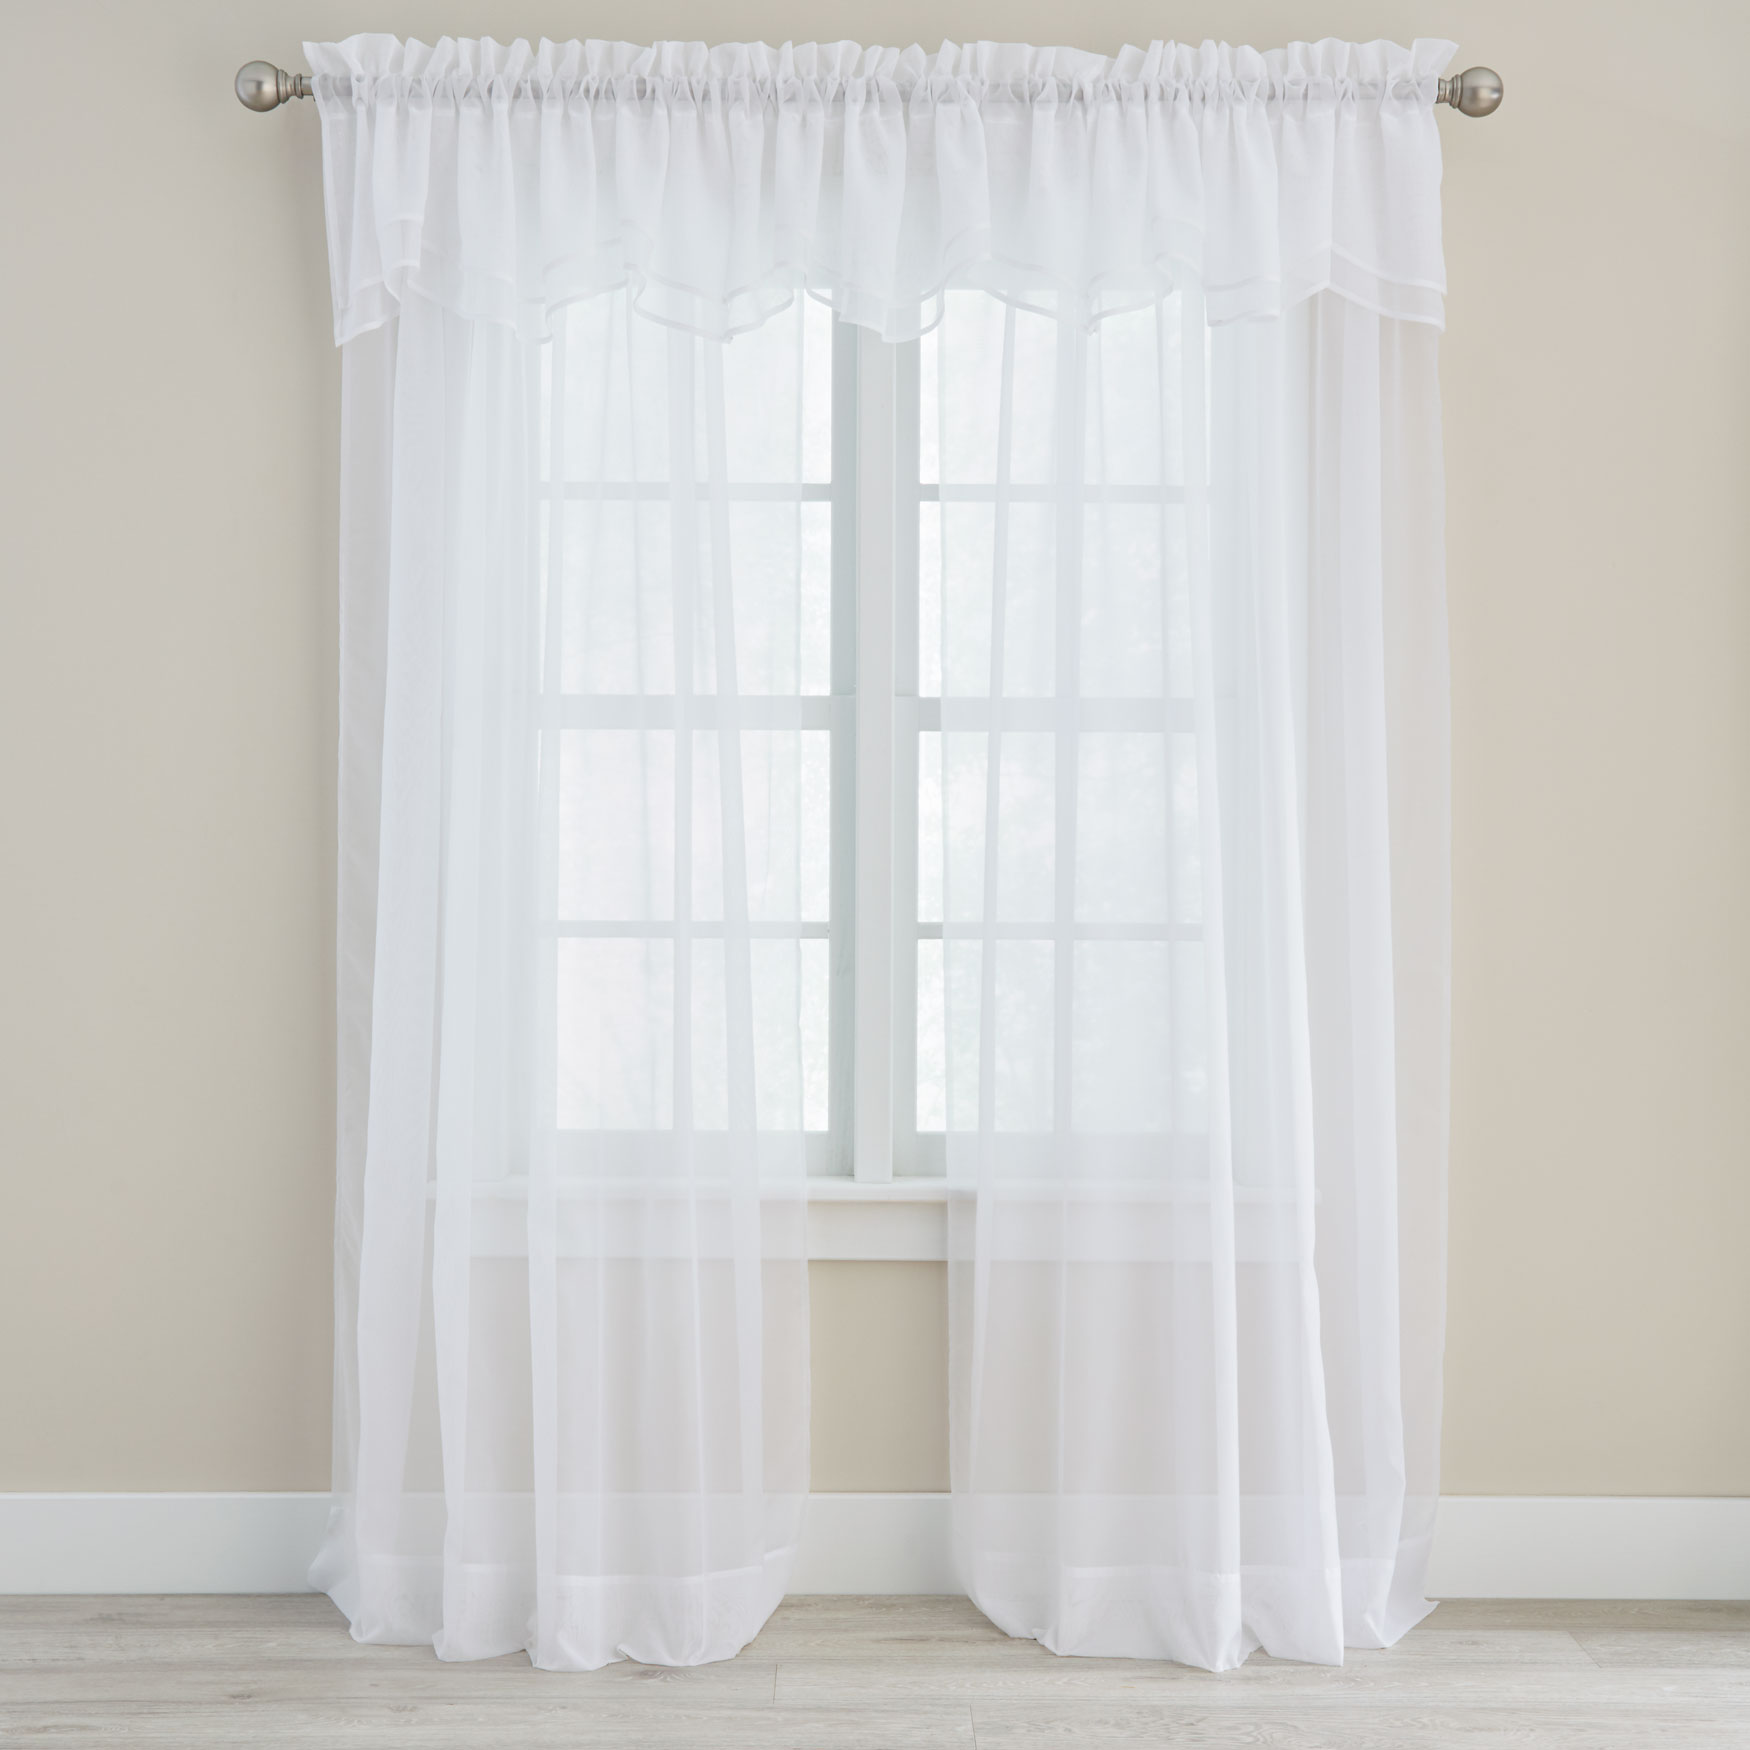 Voile Valance Part - 19: BH Studio® Sheer Voile Layered Valance, WHITE